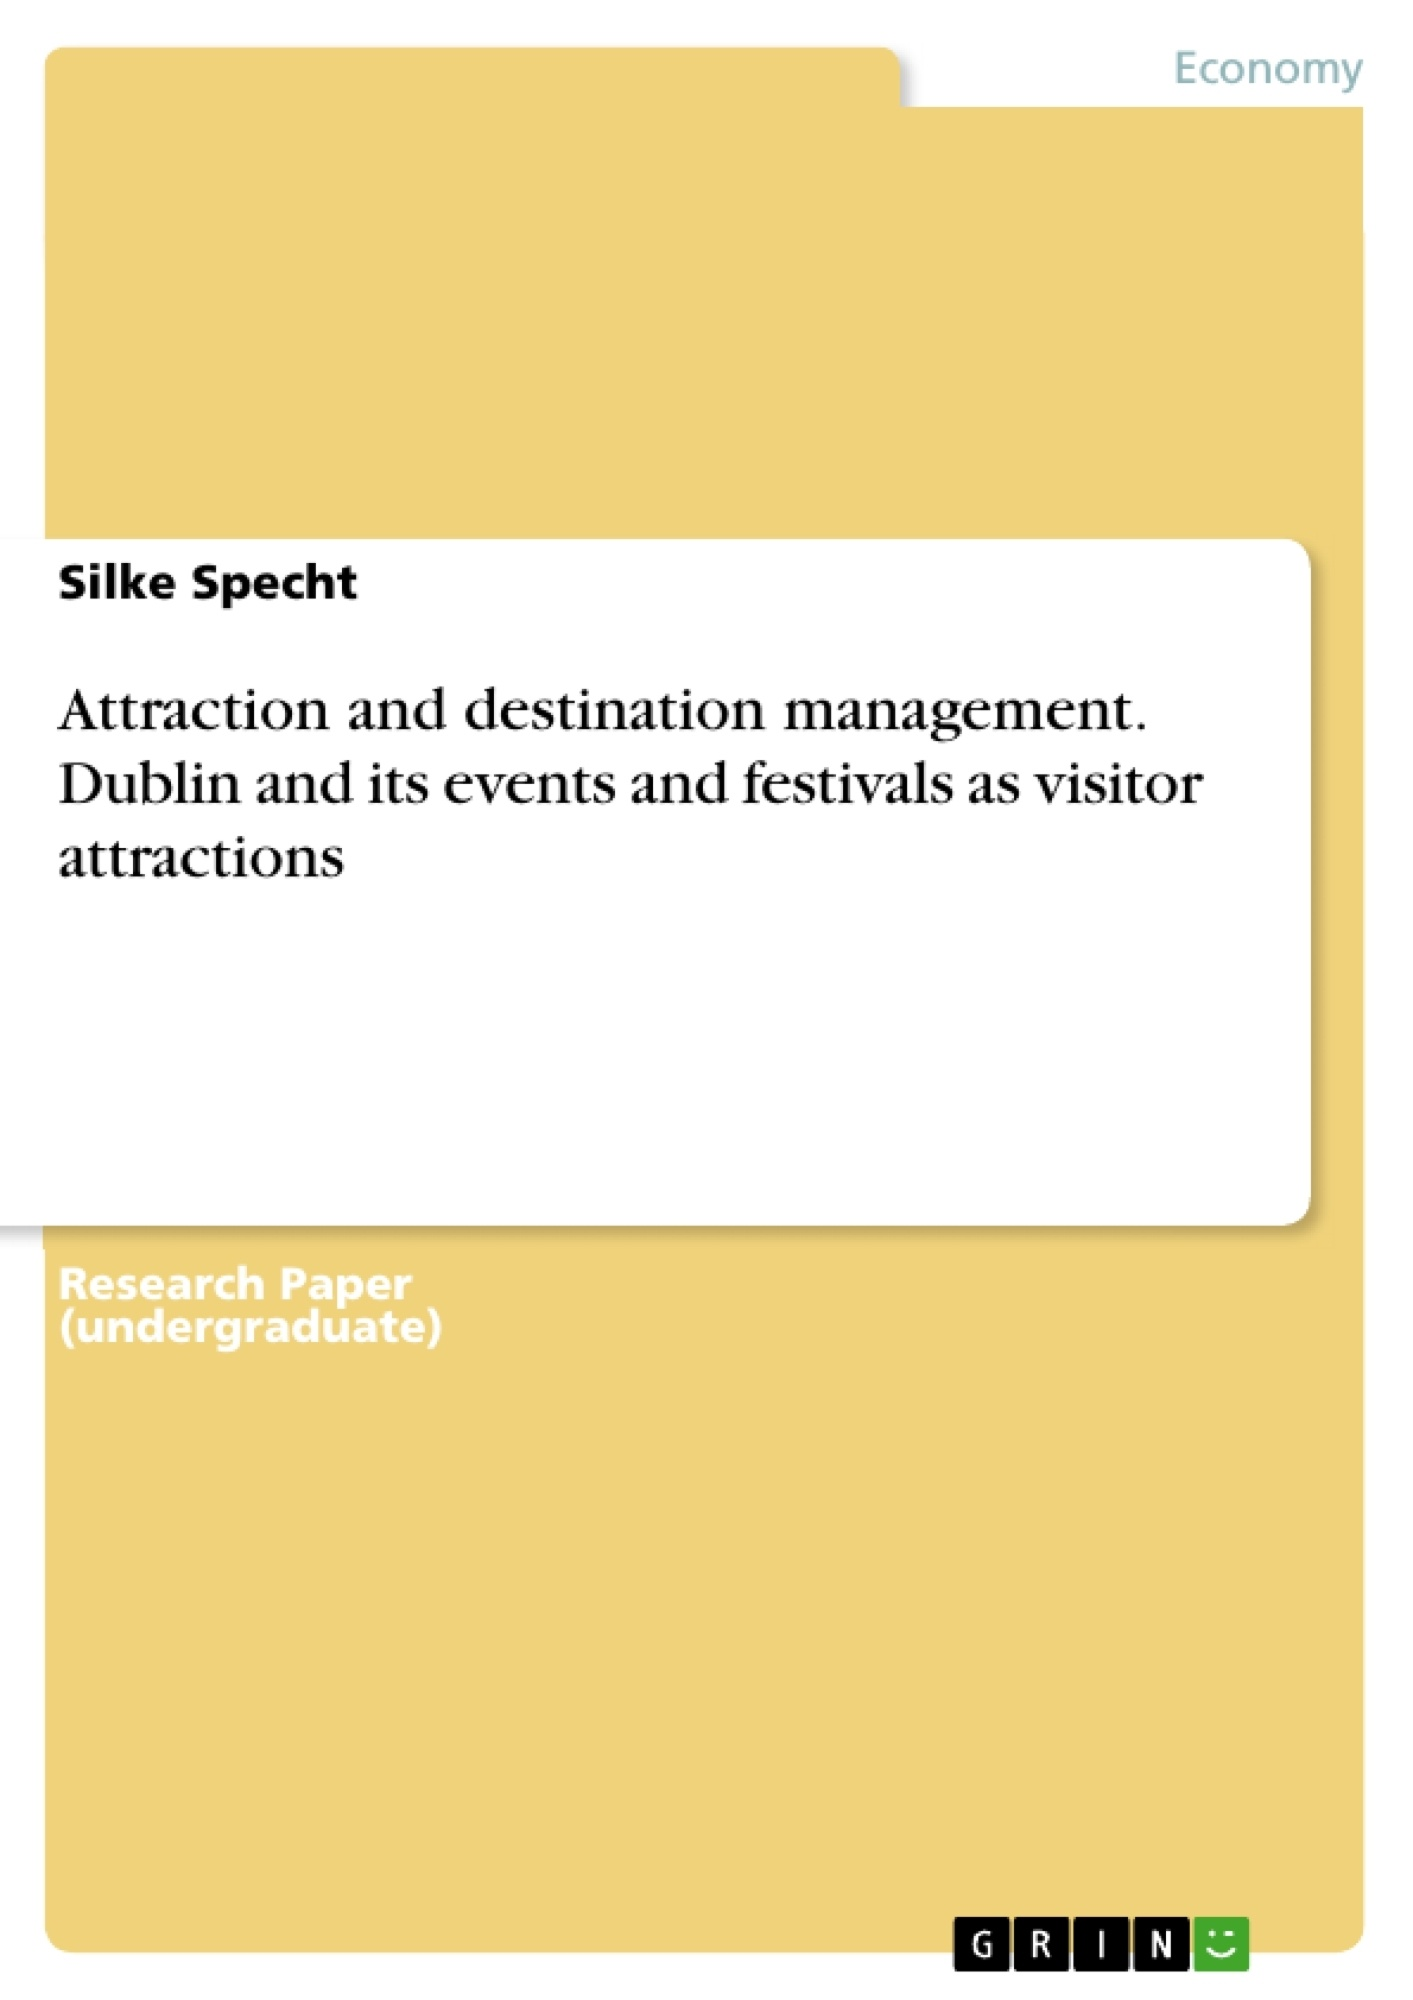 Title: Attraction and destination management. Dublin and its events and festivals as visitor attractions